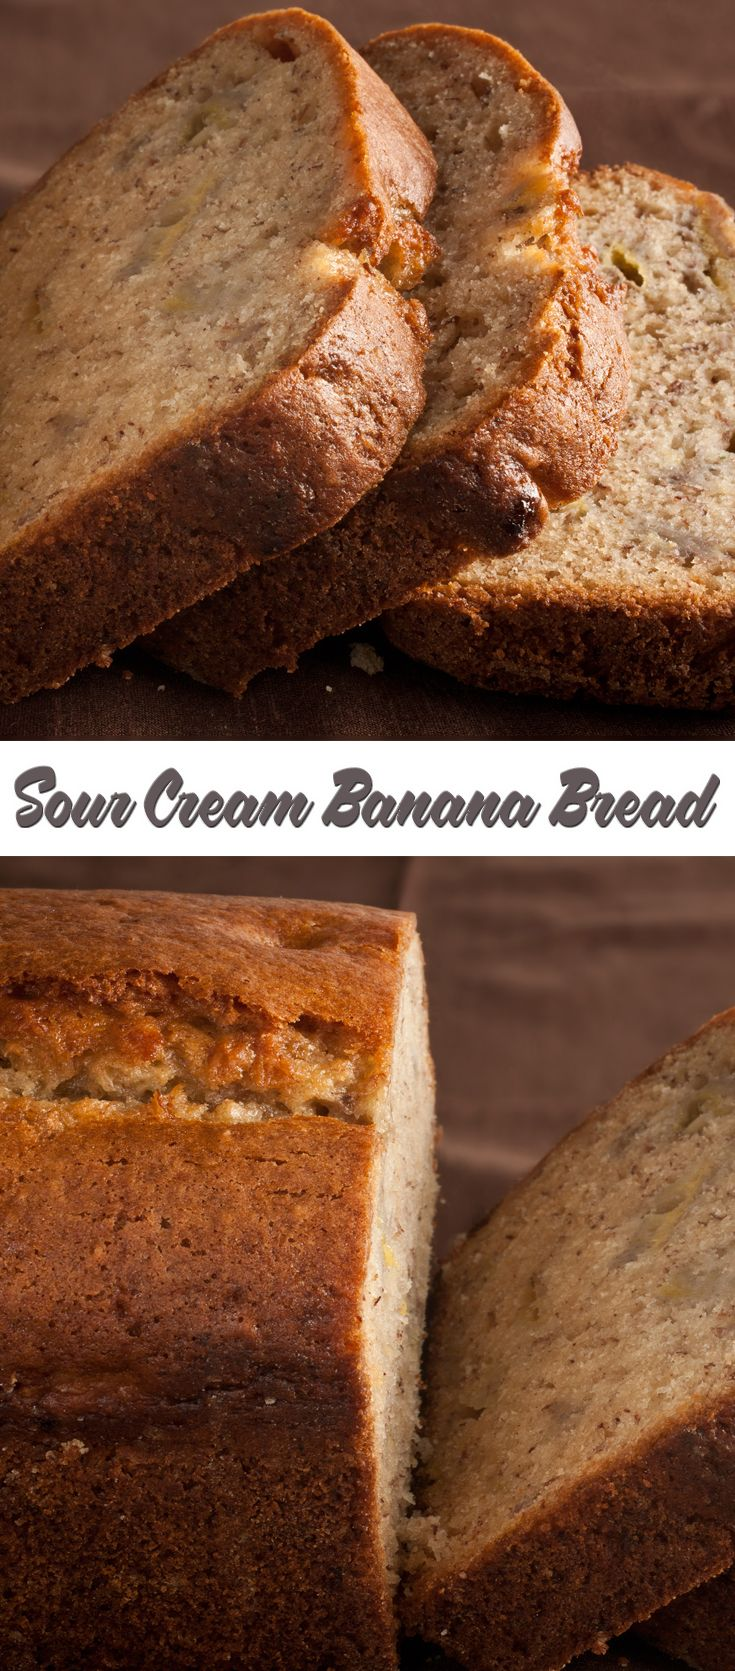 Sour Cream Banana Bread Recipe Sour Cream Banana Bread Banana Bread Recipes Banana Recipes